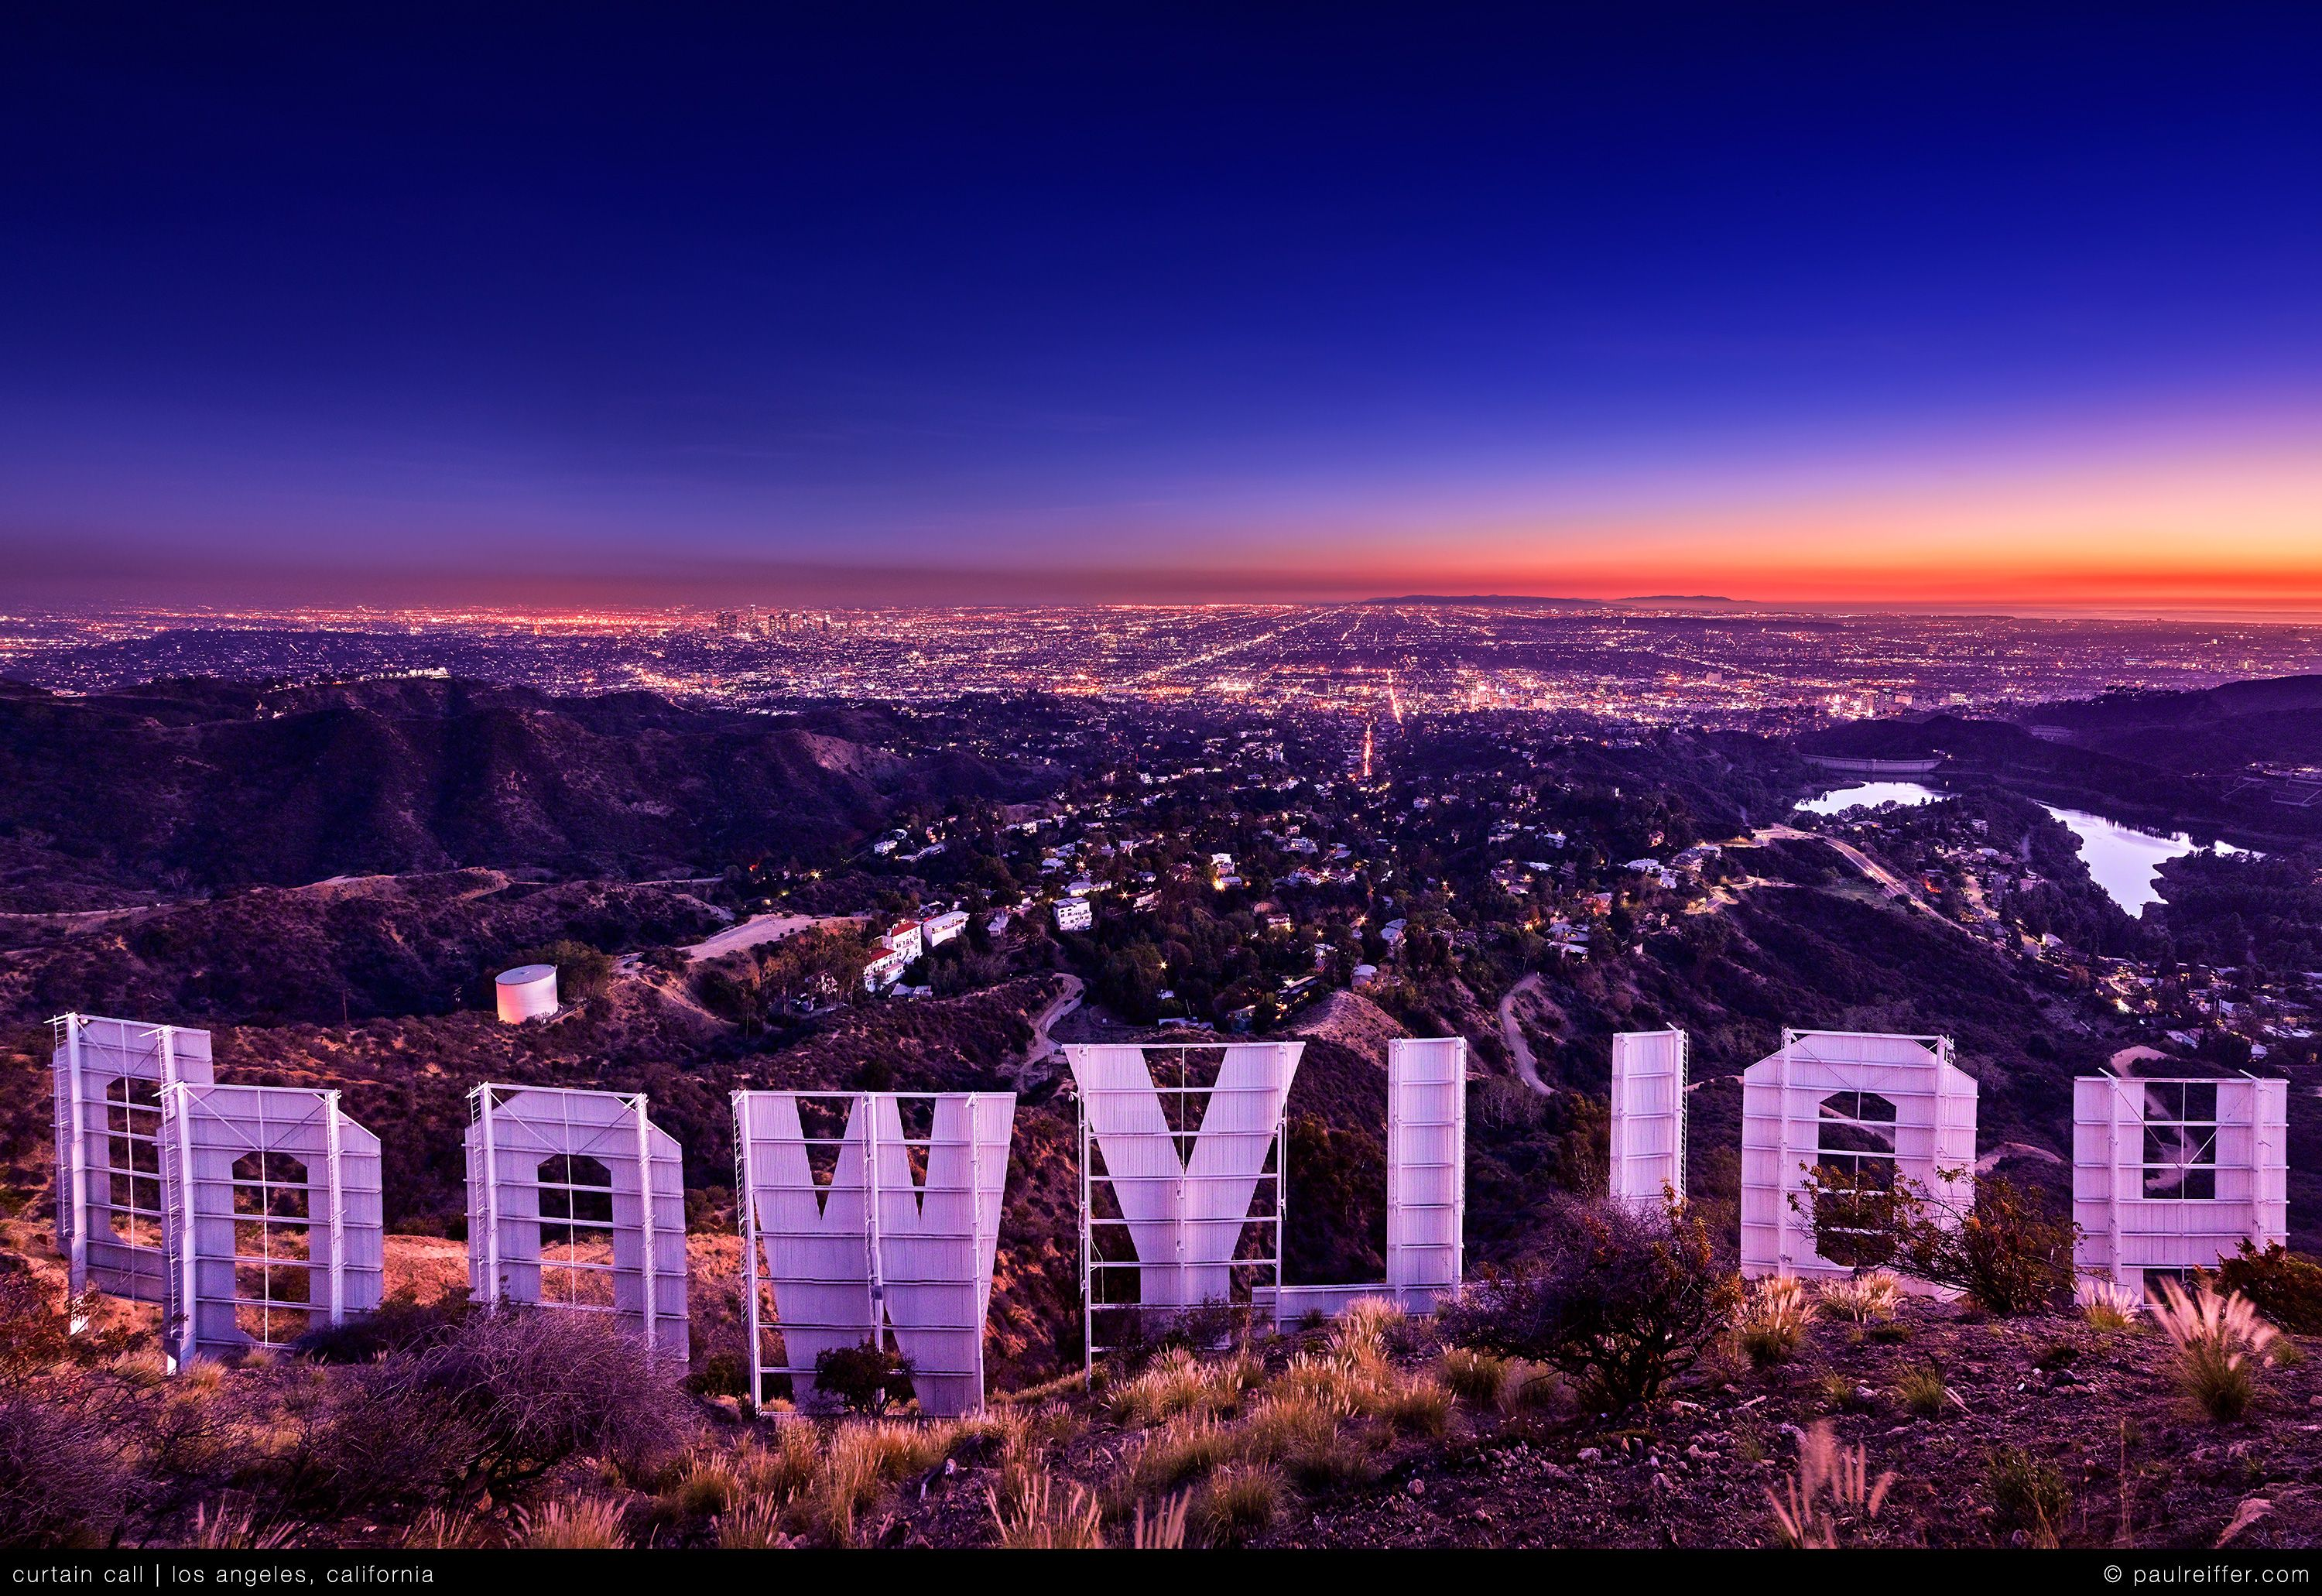 Hollywood Sign Sunset. Pic by paulreiffer | California